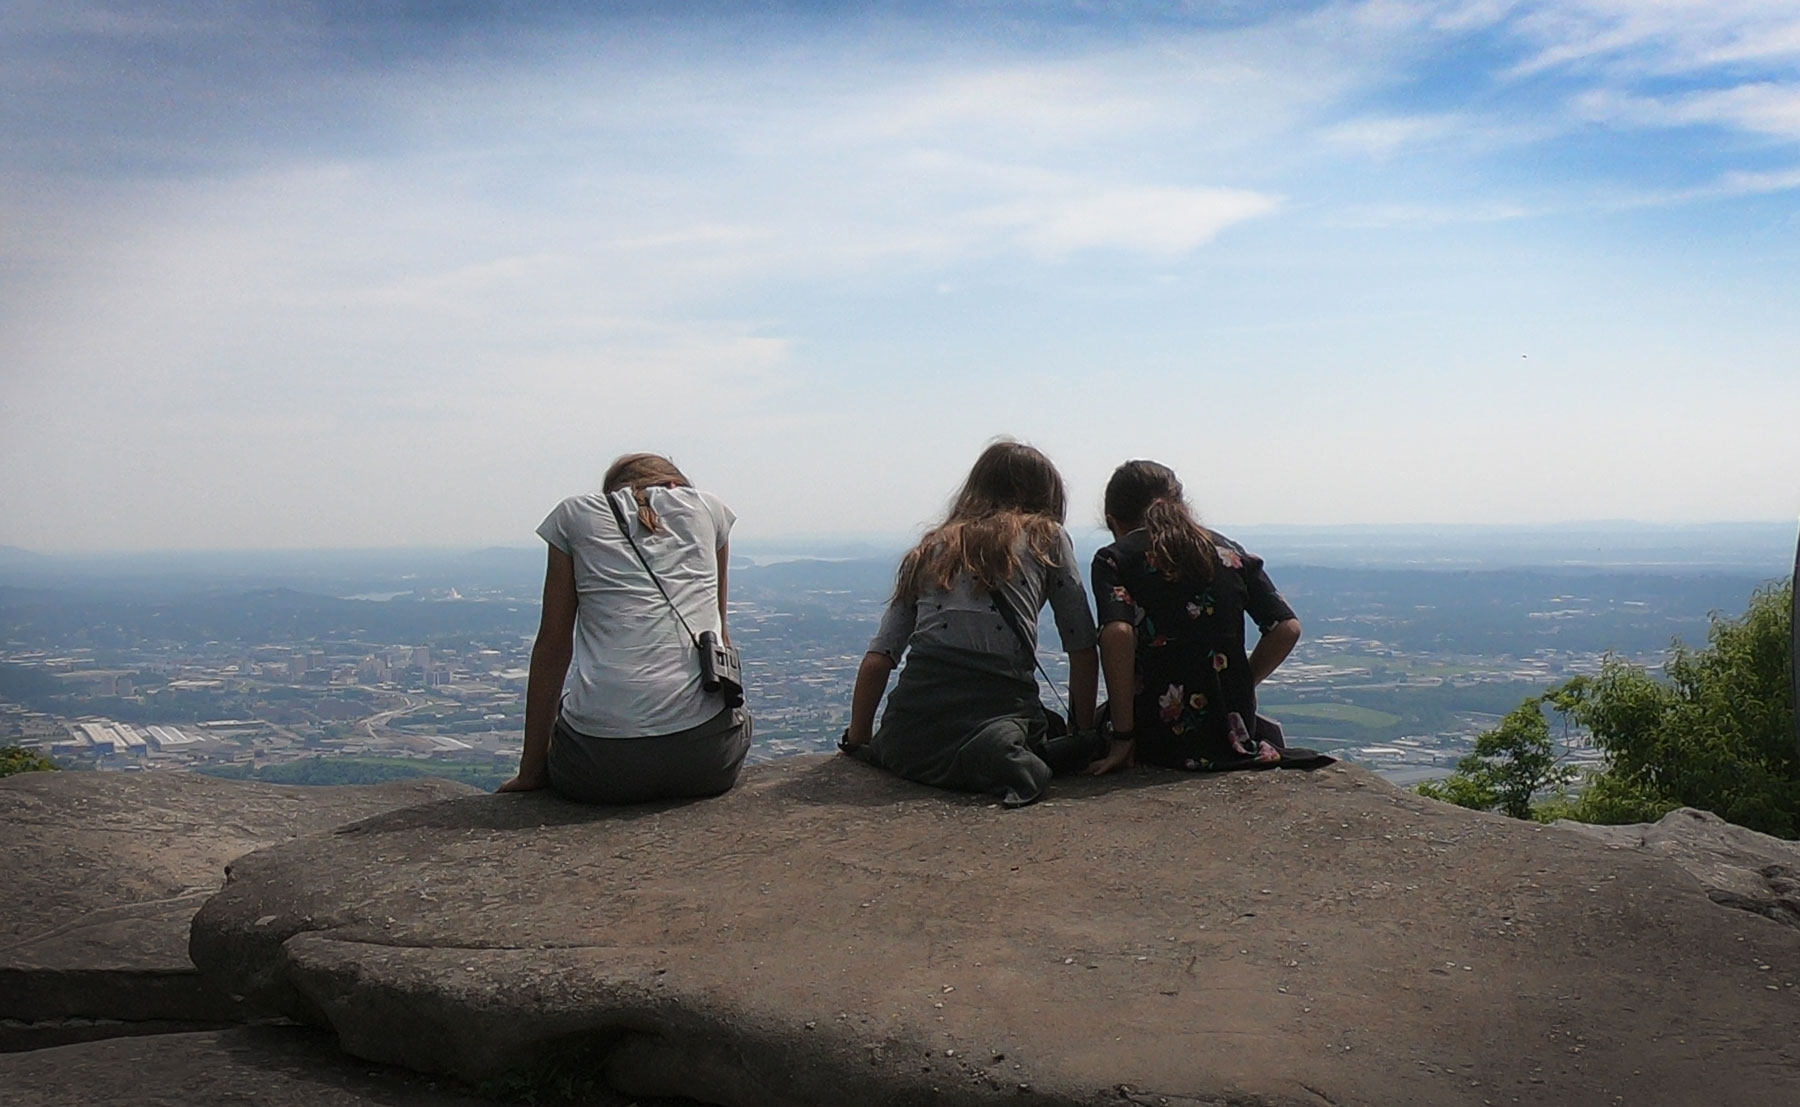 Three girls on Lookout Mountain Overlook at Chickamauga and Chattanooga National Military Park, Tennessee